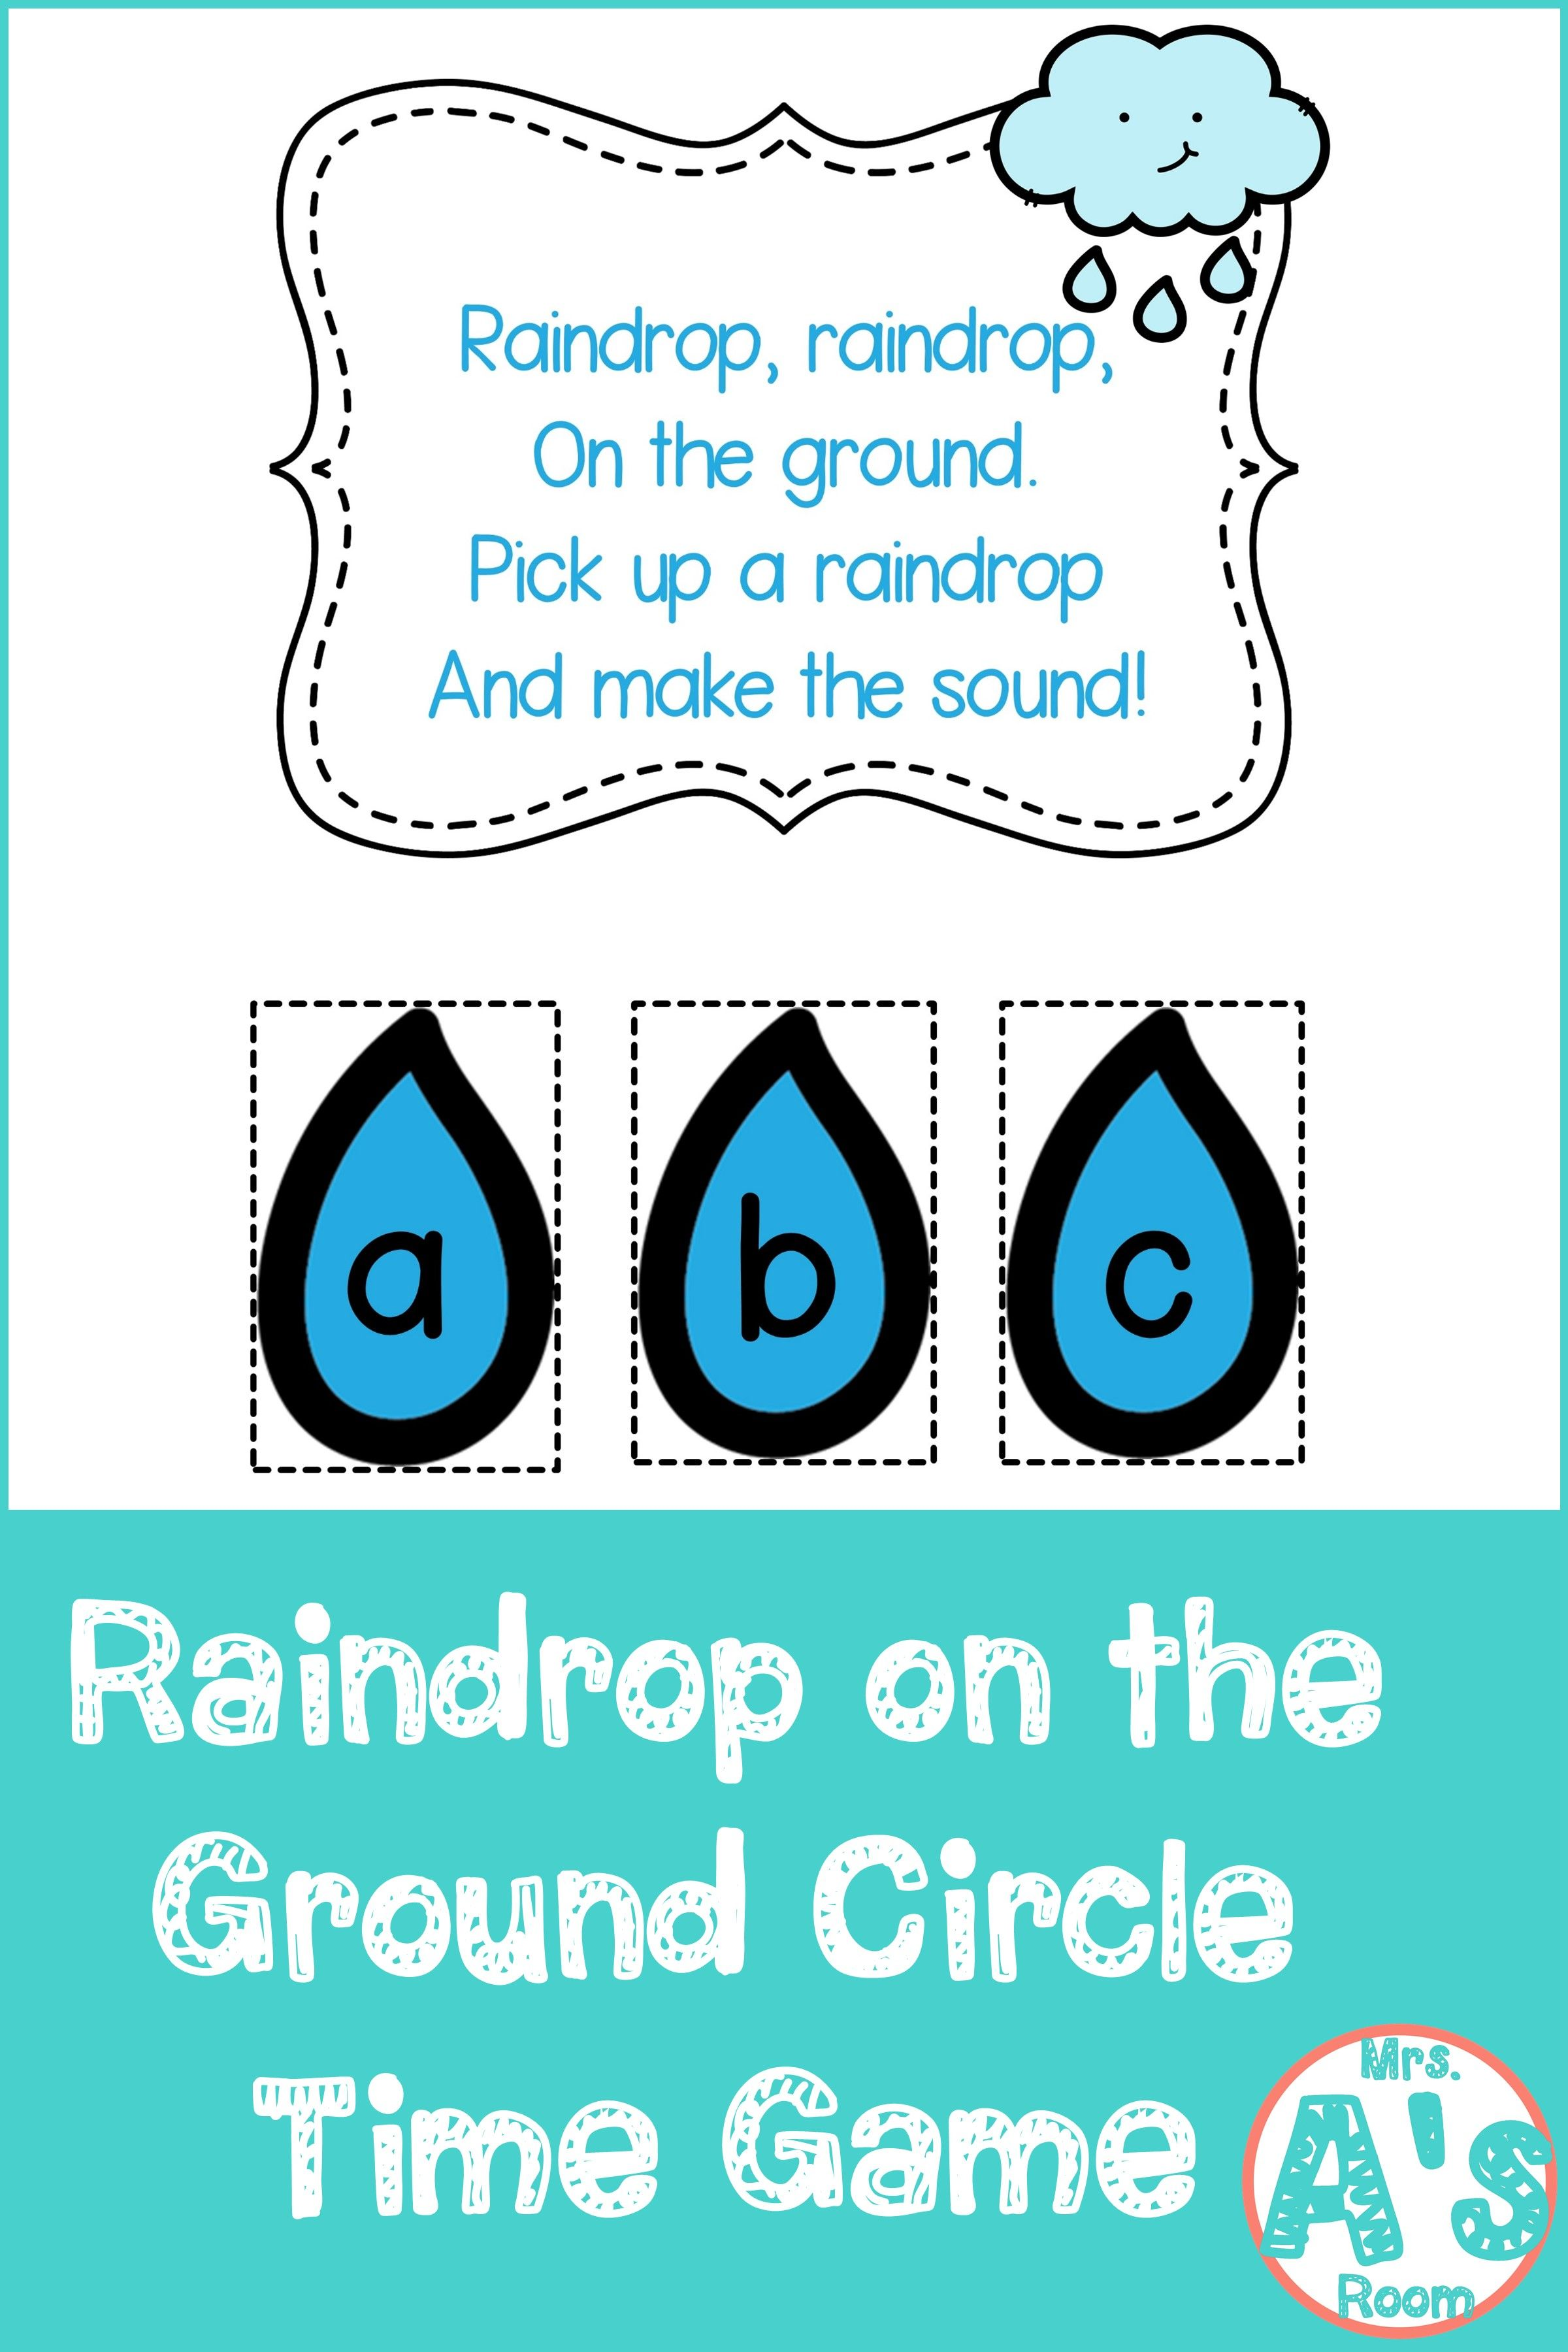 Raindrop On The Ground Circle Time Game In